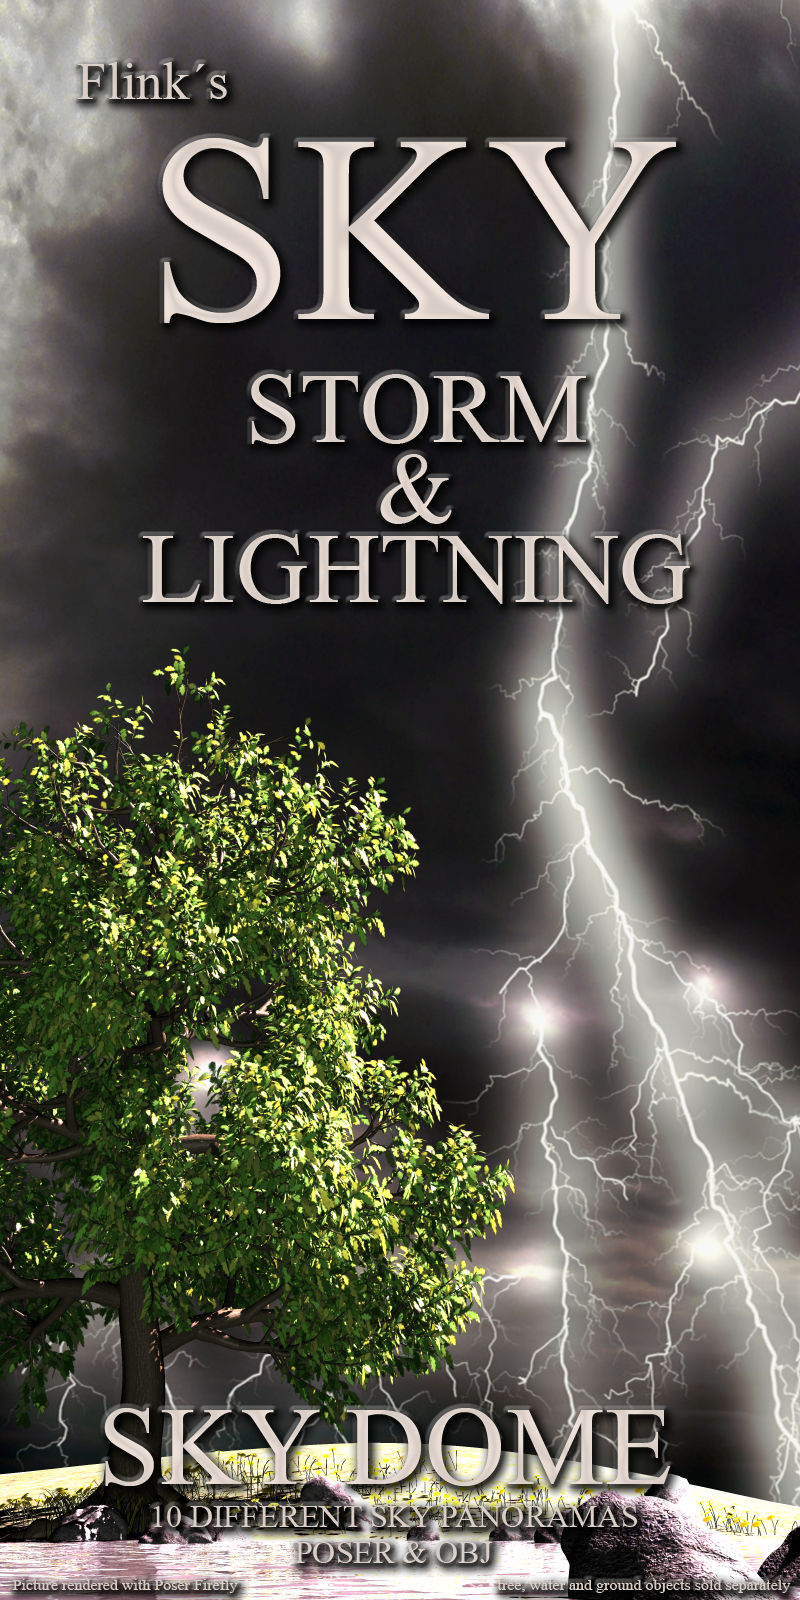 Flinks Sky Storm and Lightning by Flink